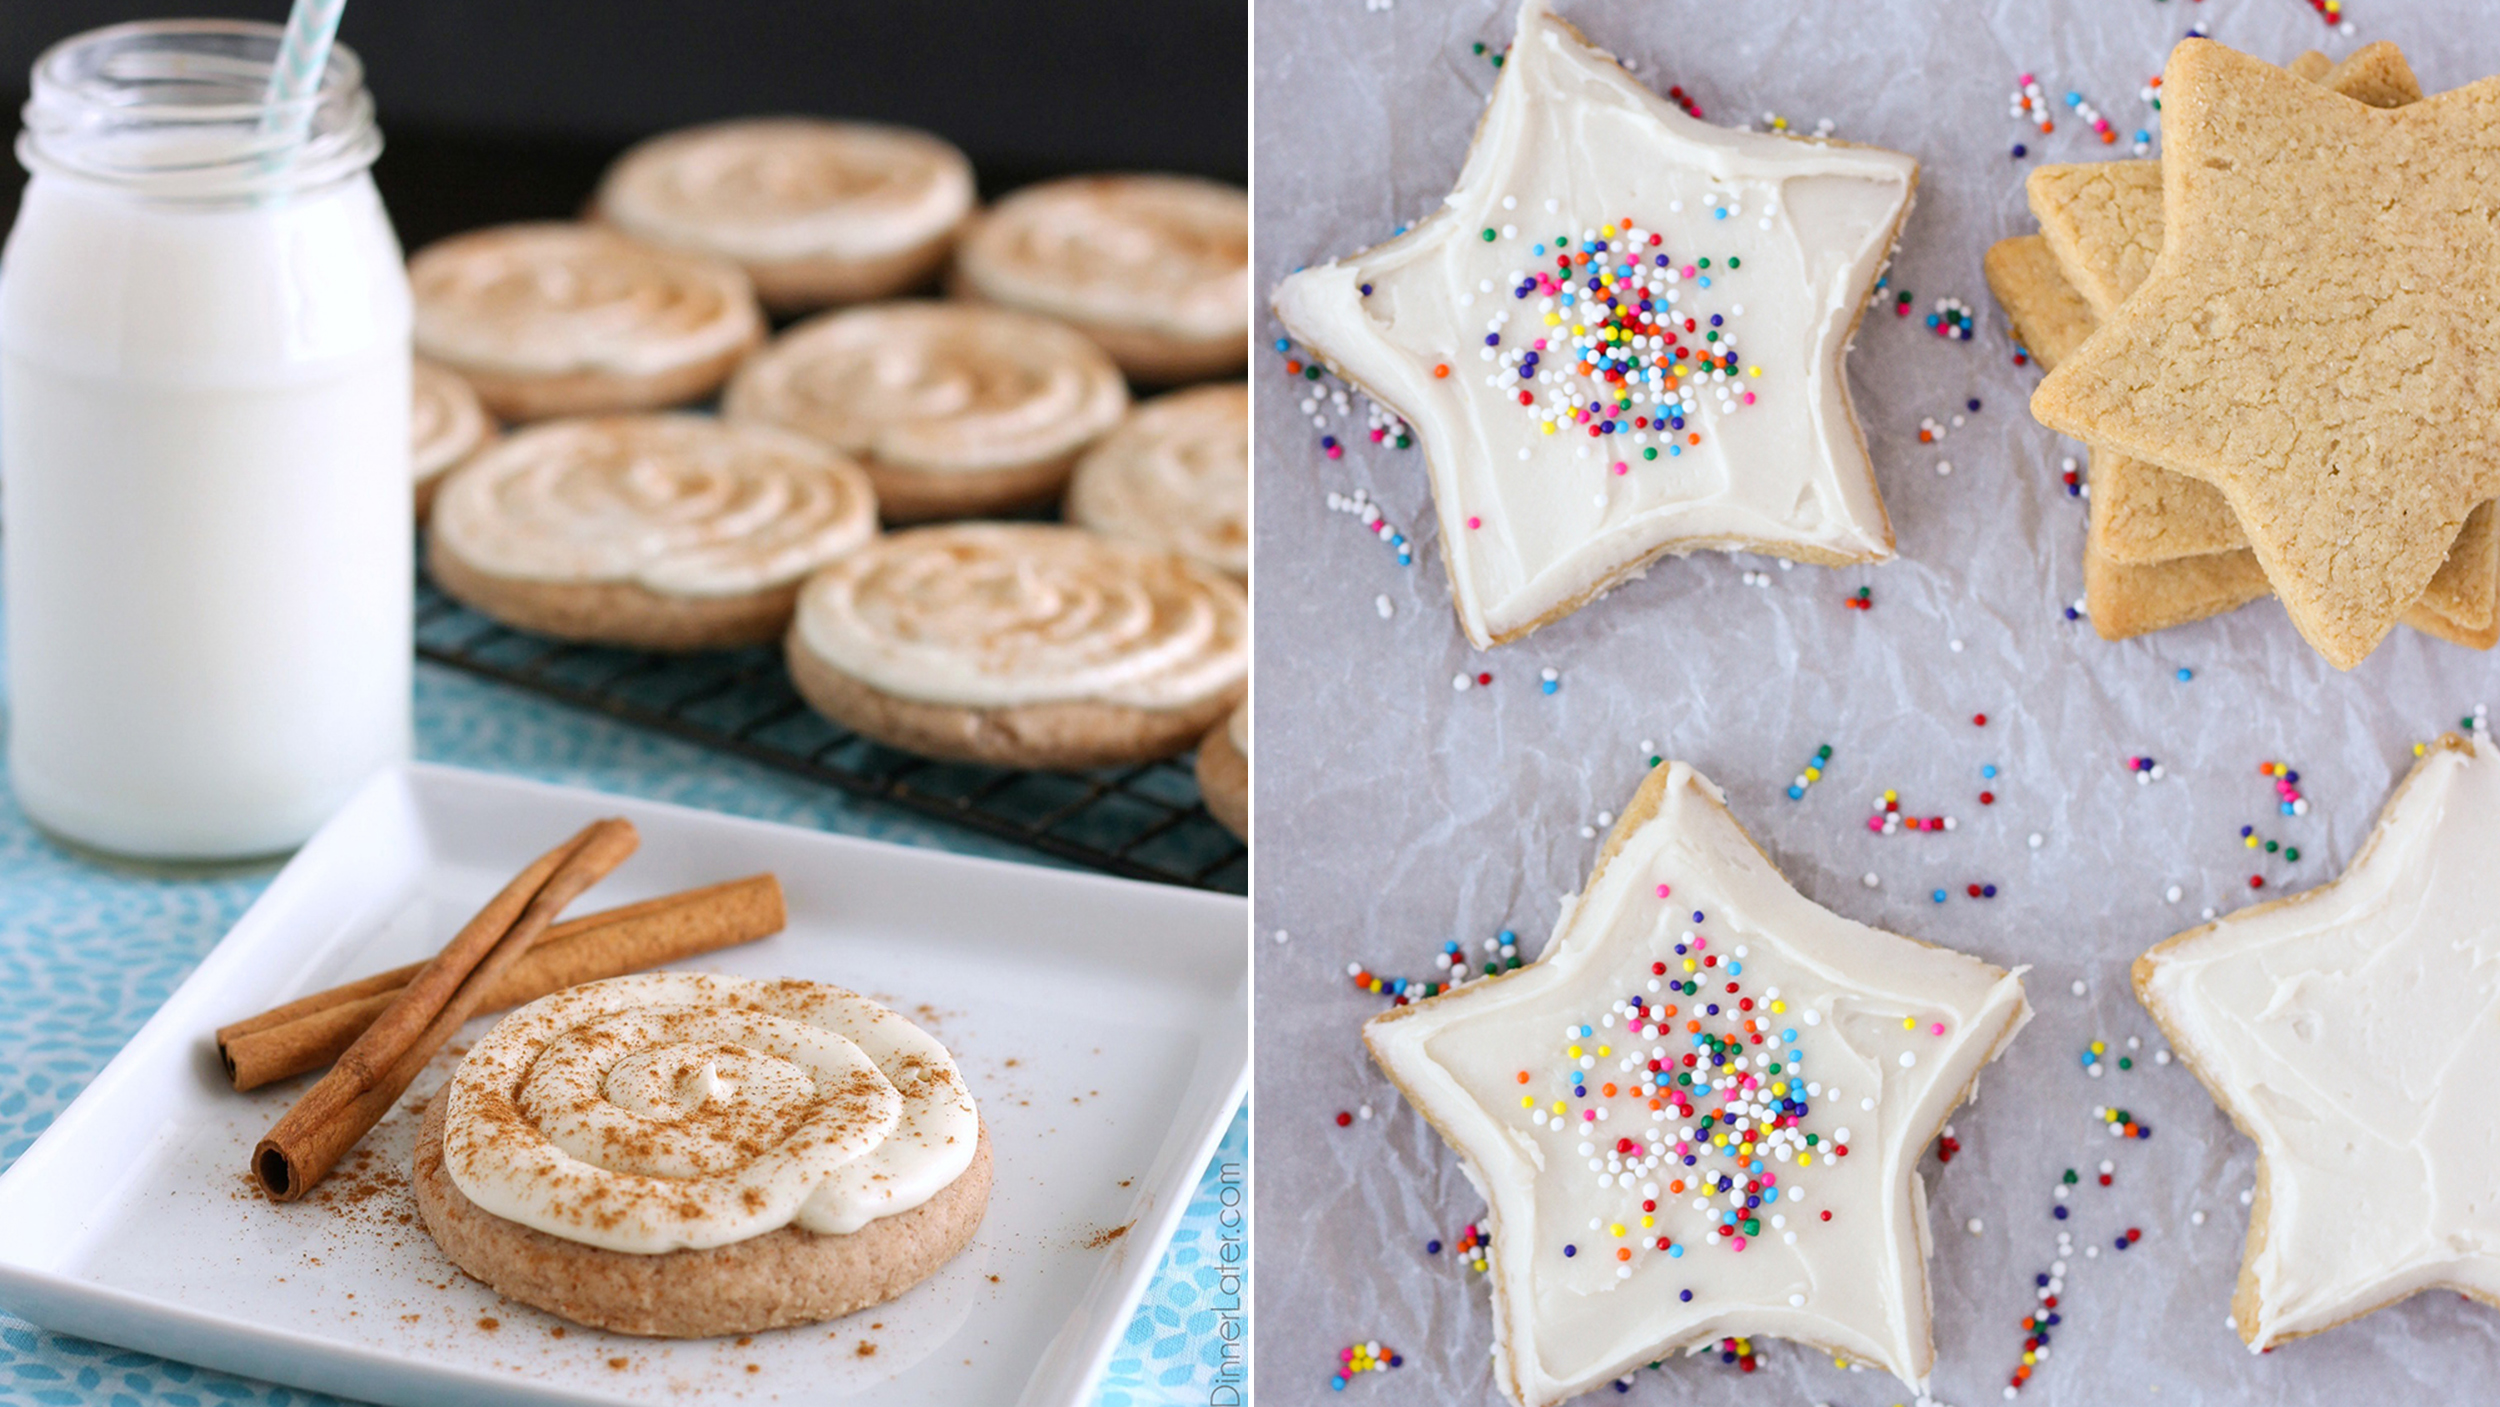 5 easy sugar cookie recipes to make for the holidays - Simple Christmas Cookies